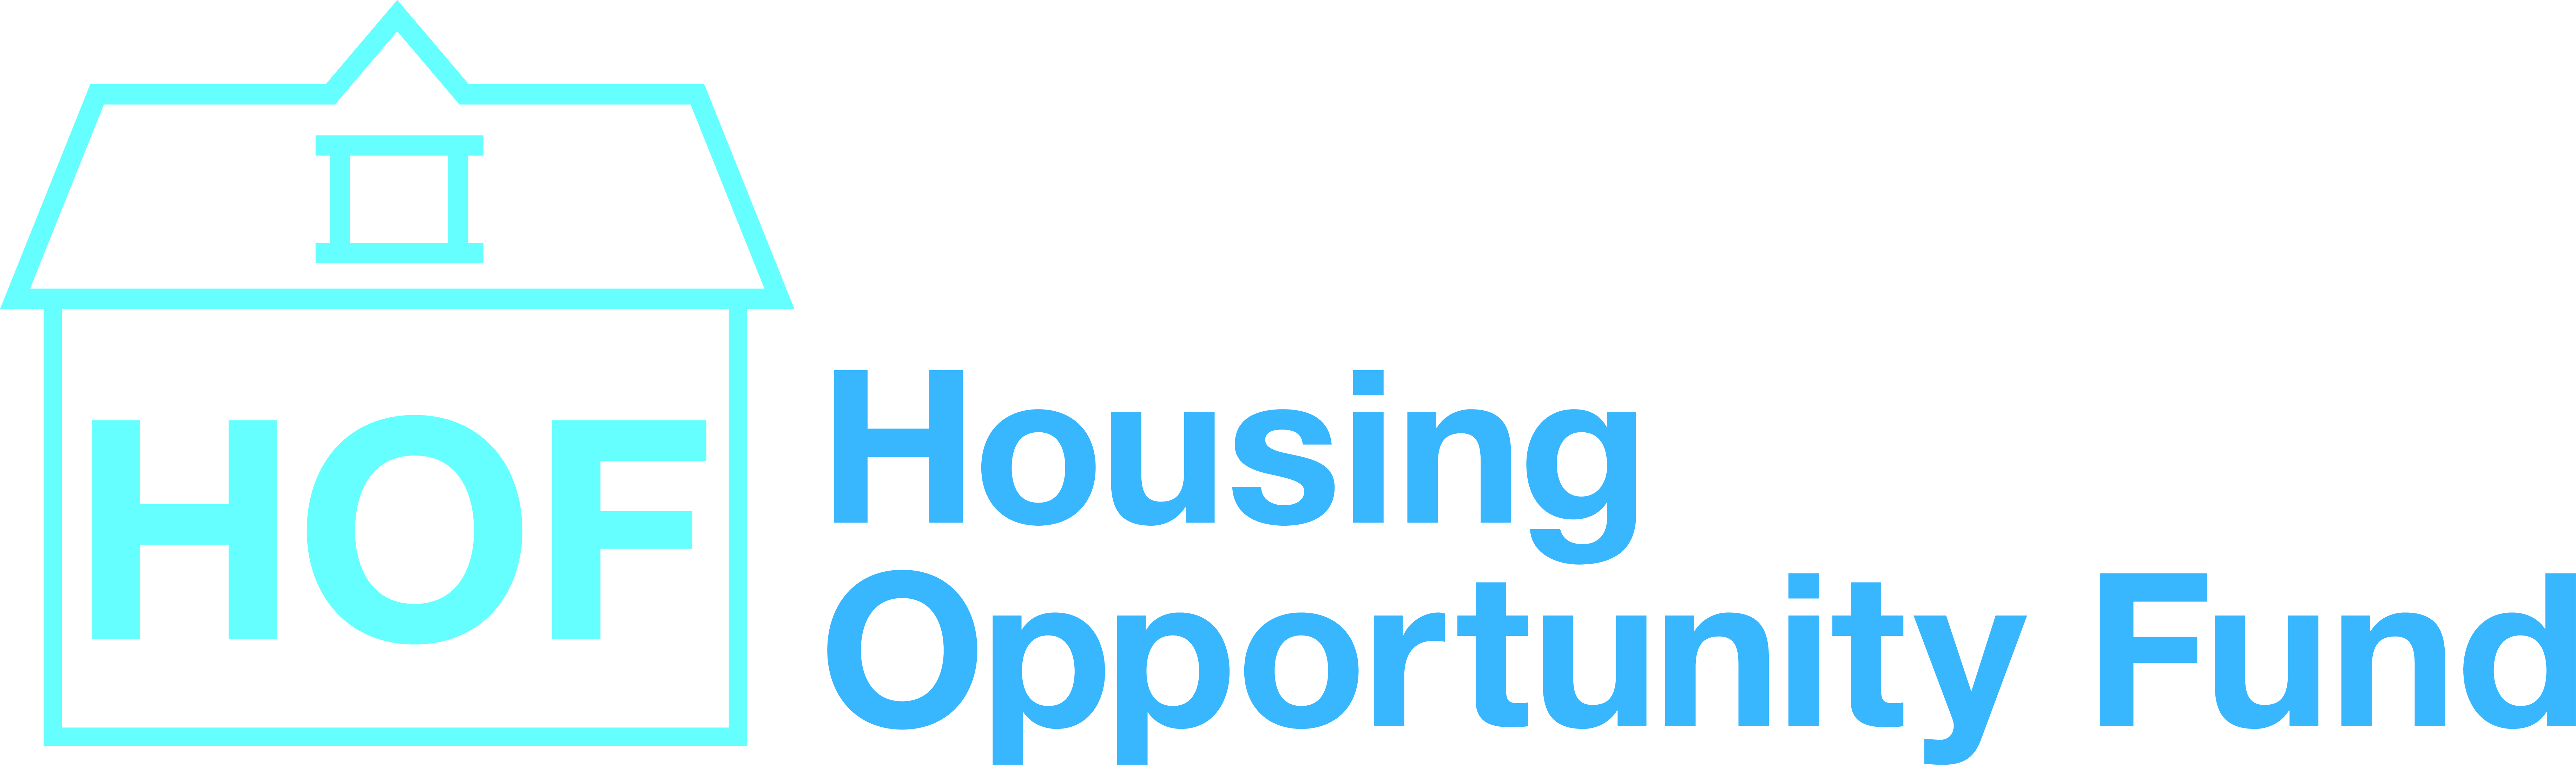 Housing Opportunity Fund